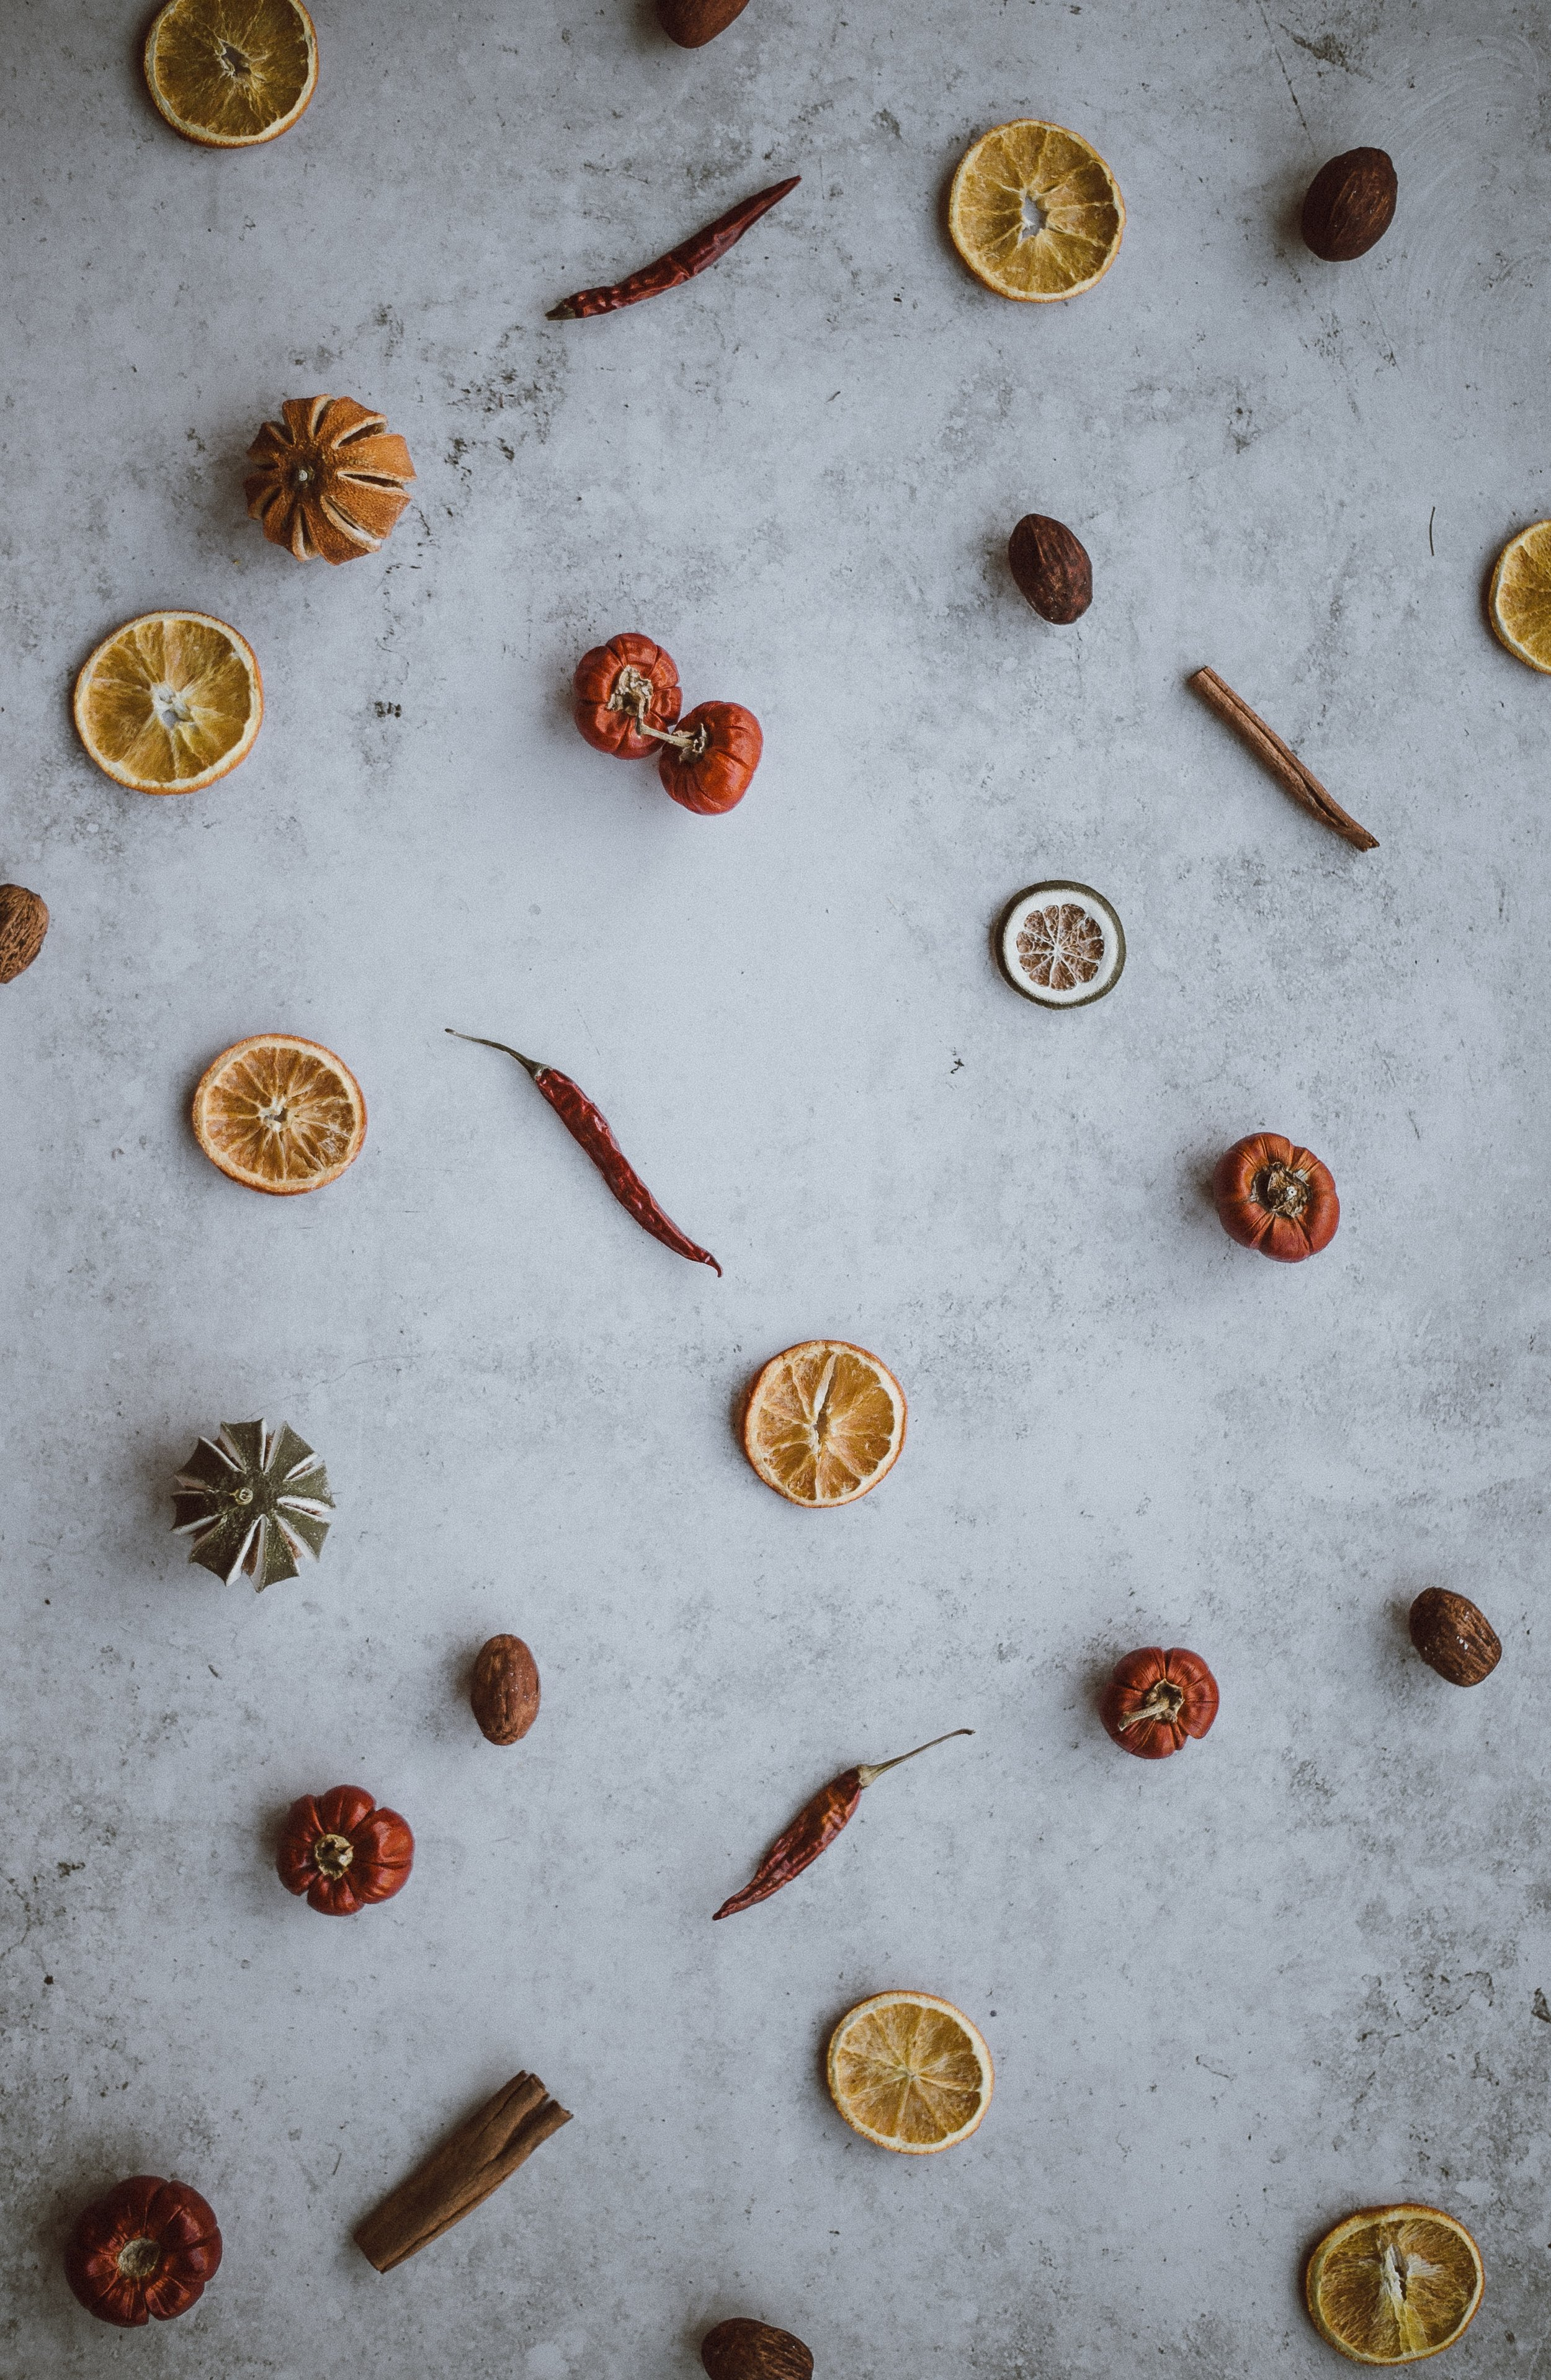 A photo of dehydrated citrus, peppers, tomatoes, and spices.